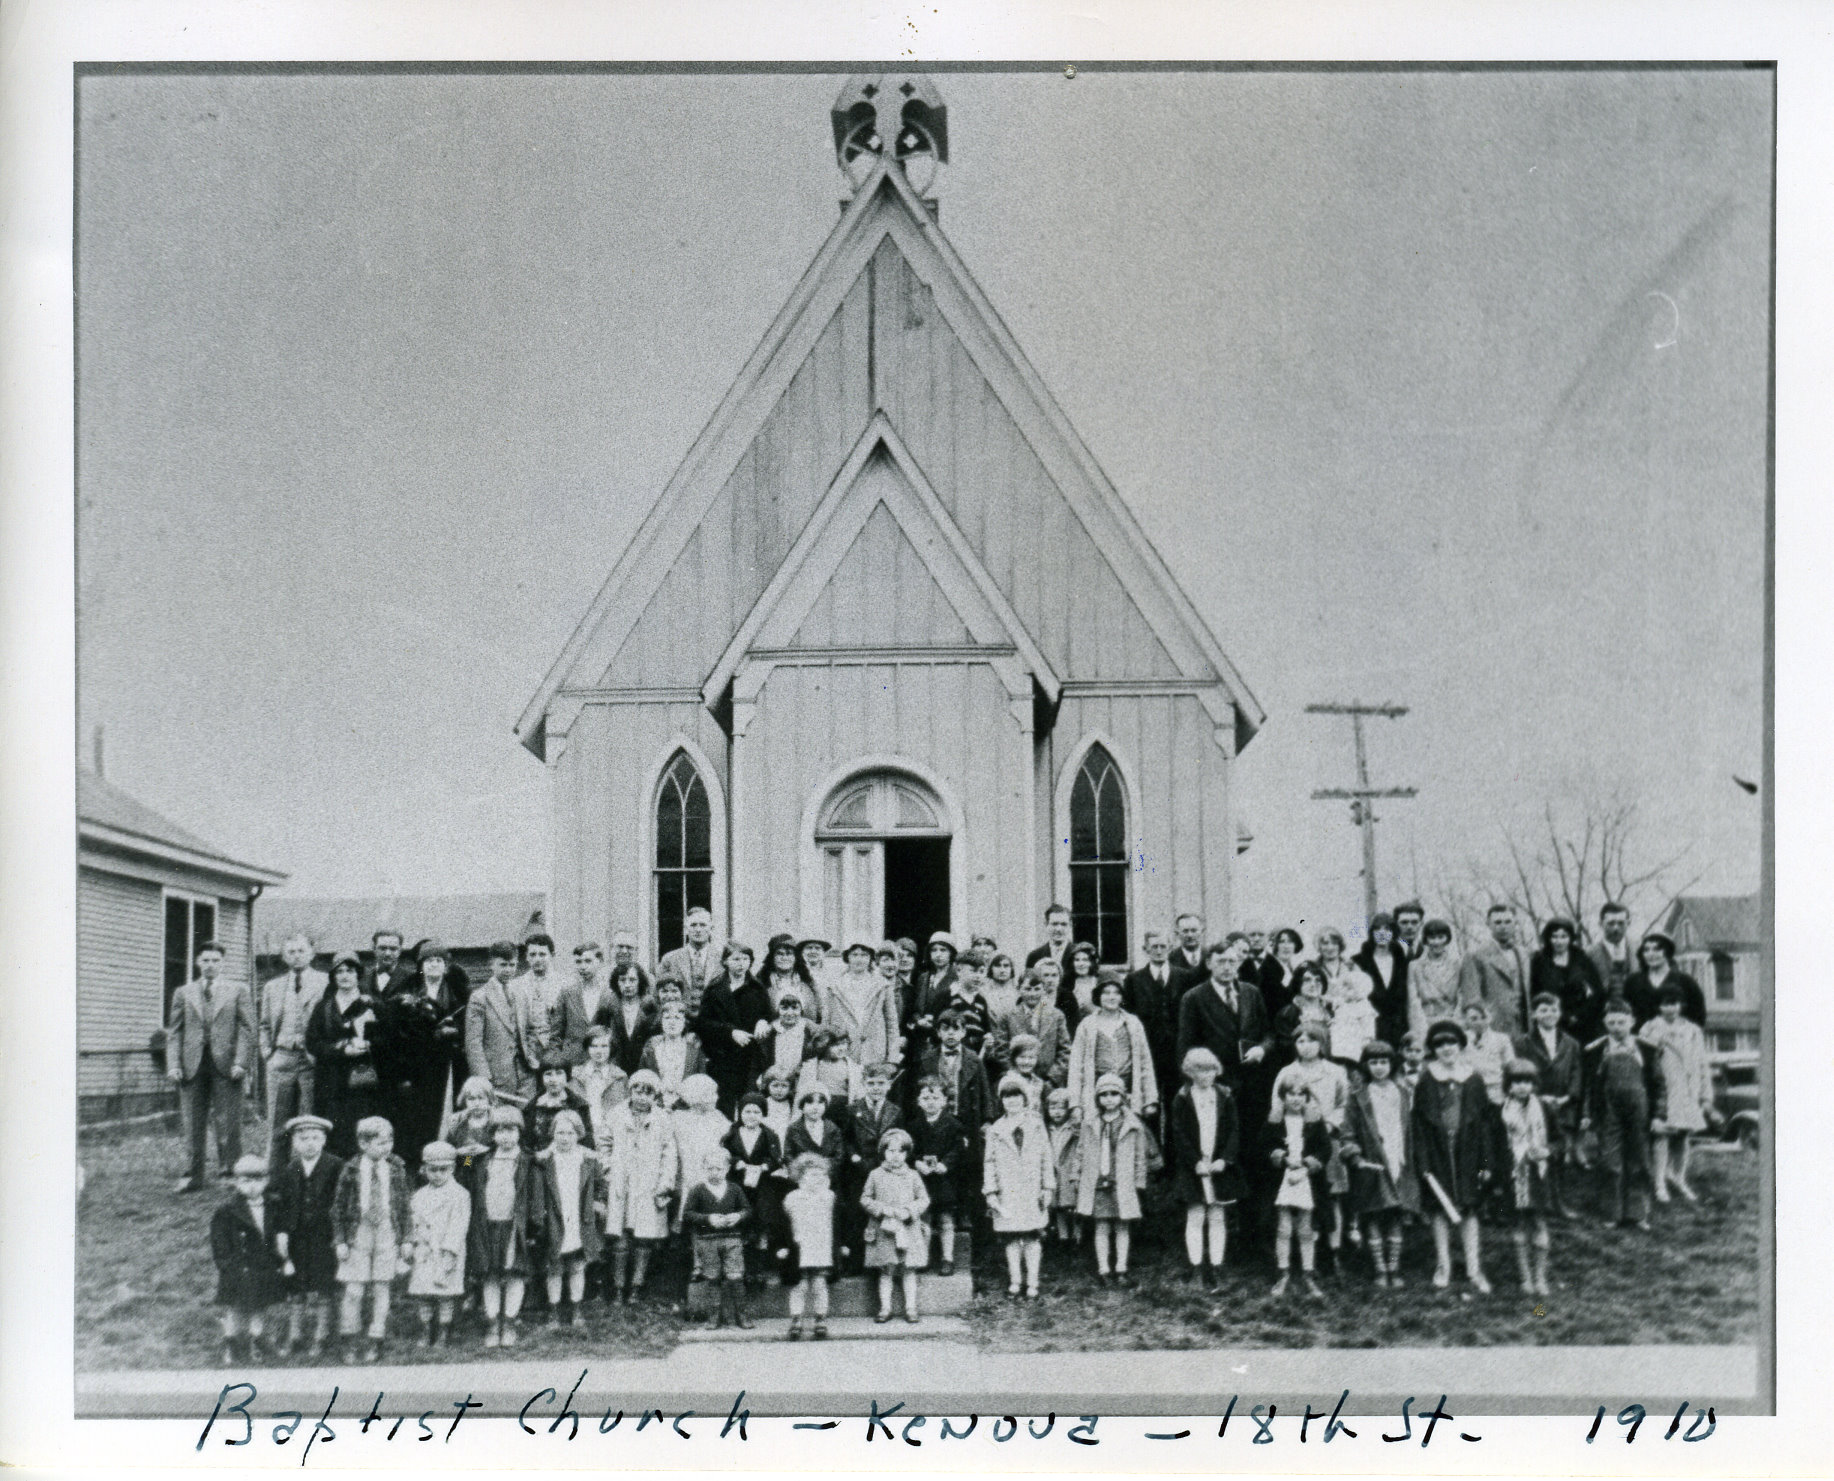 Moved to Kenova from Tornado, West Virginia, this building served as a short-lived Episcopal church before being shared by several denominations including FBCK. Courtesy of the Kenova Historical Commission.